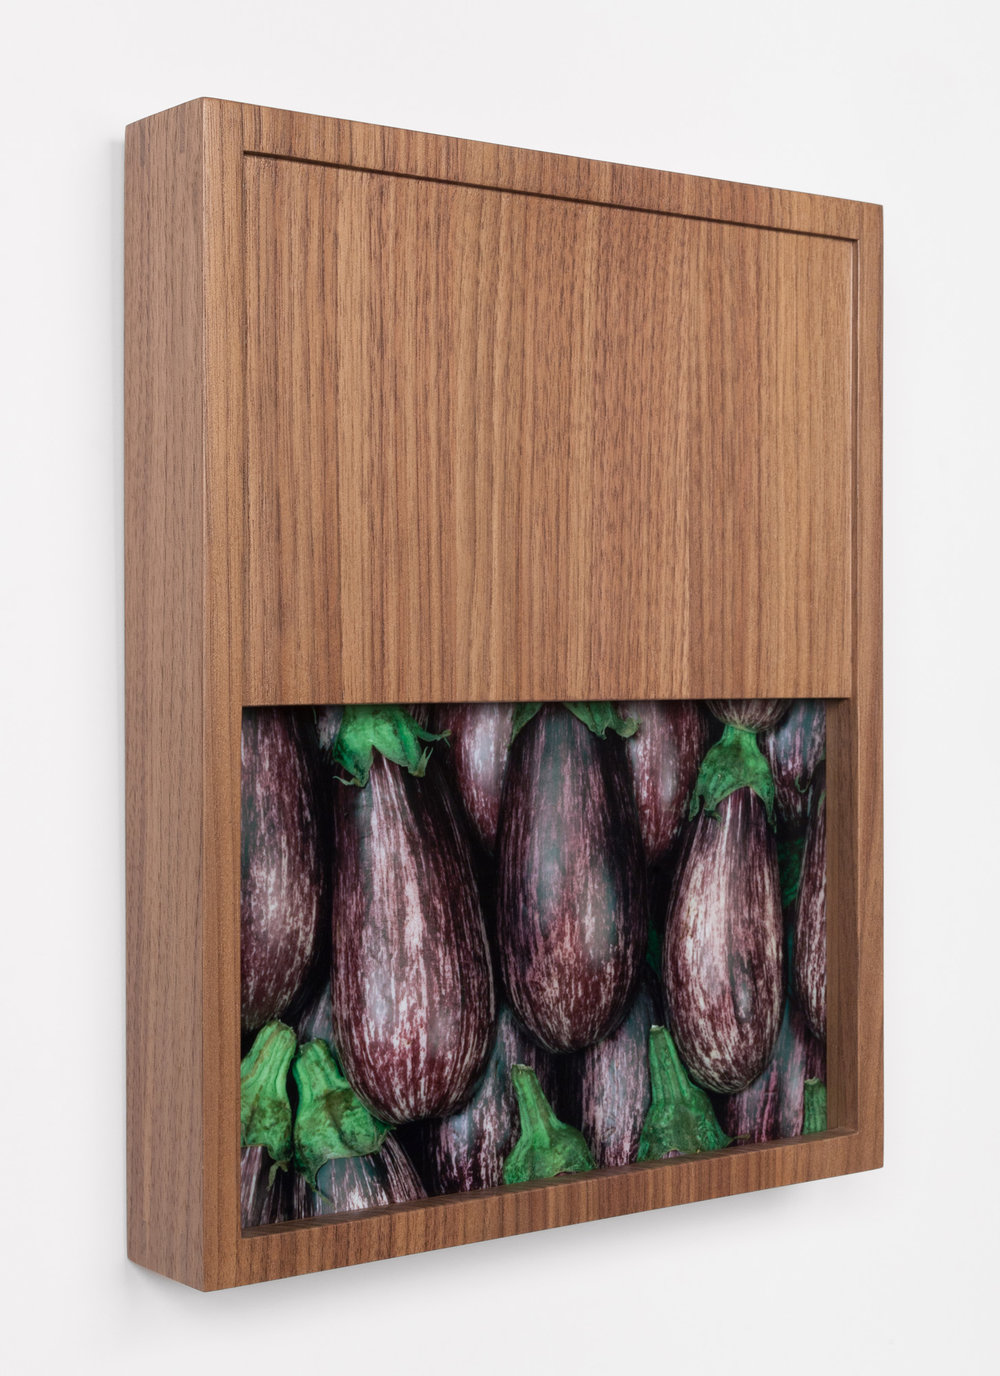 "Alex Kisilevich  Eggplants , 2016 C-print mounted to stonehenge gator, modified wooden frame, 13"" x 10.75"" x 2"" Signed edition of 5 + AP"